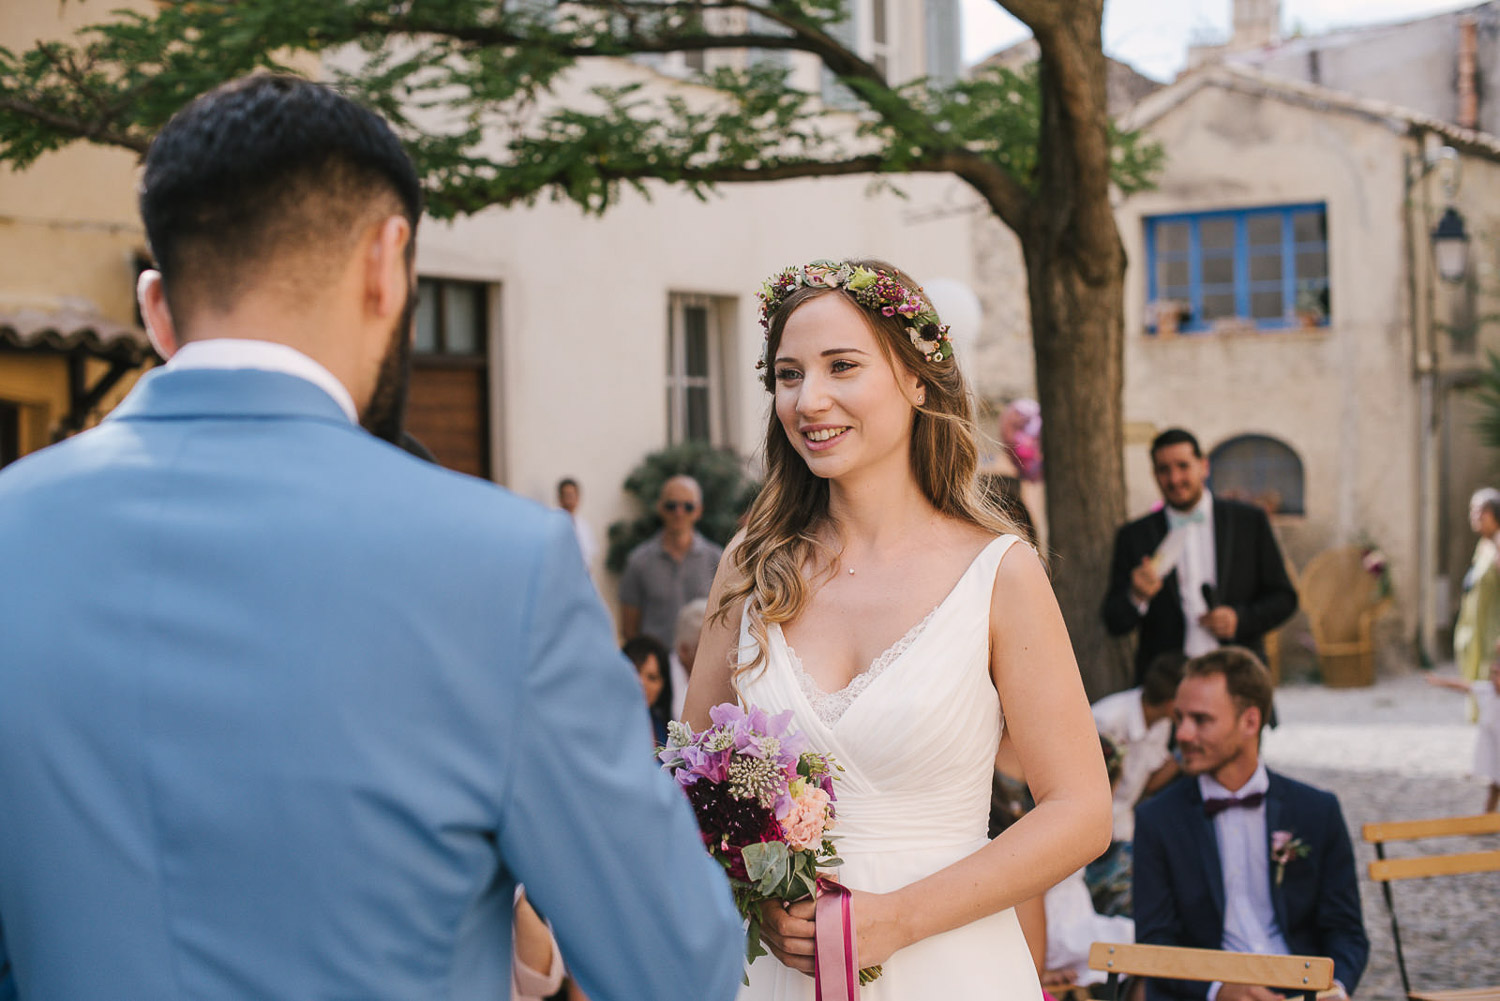 photographe mariage famille entreprise grenoble lyon annecy chambery mariage provence